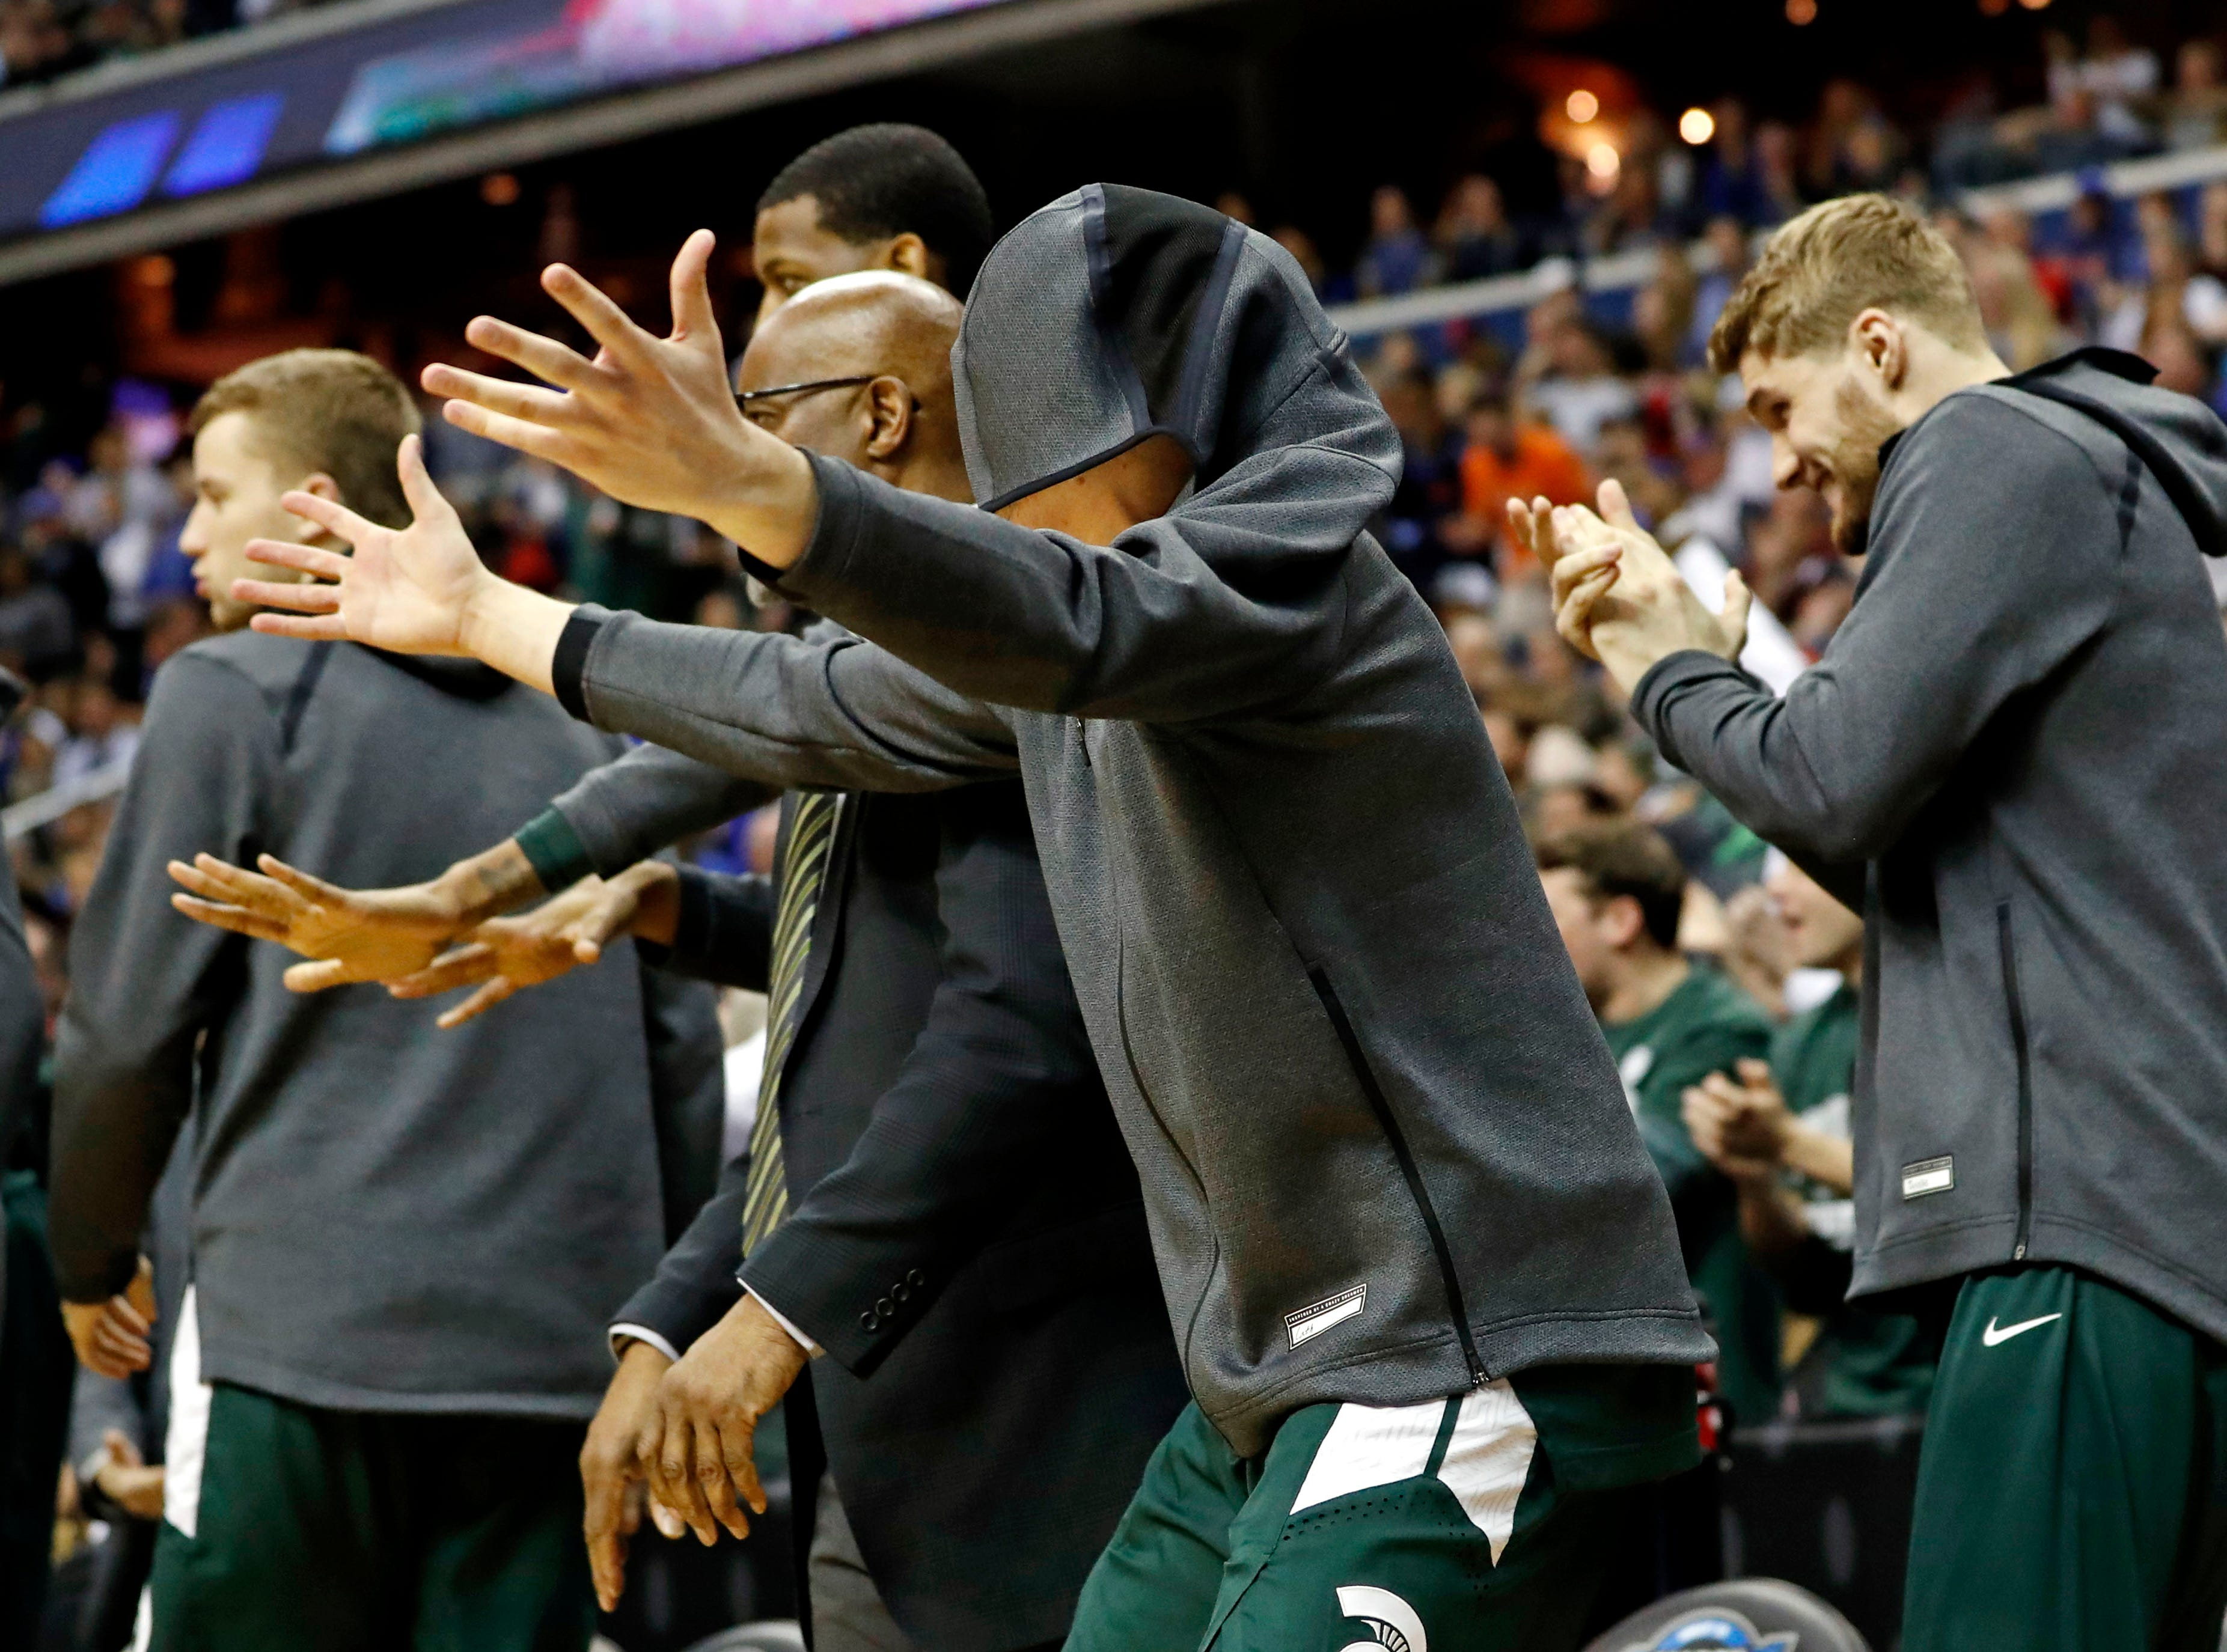 Mar 31, 2019; Washington, DC, USA; The Michigan State Spartans reacts during the second half against the Duke Blue Devils in the championship game of the east regional of the 2019 NCAA Tournament at Capital One Arena. Mandatory Credit: Geoff Burke-USA TODAY Sports